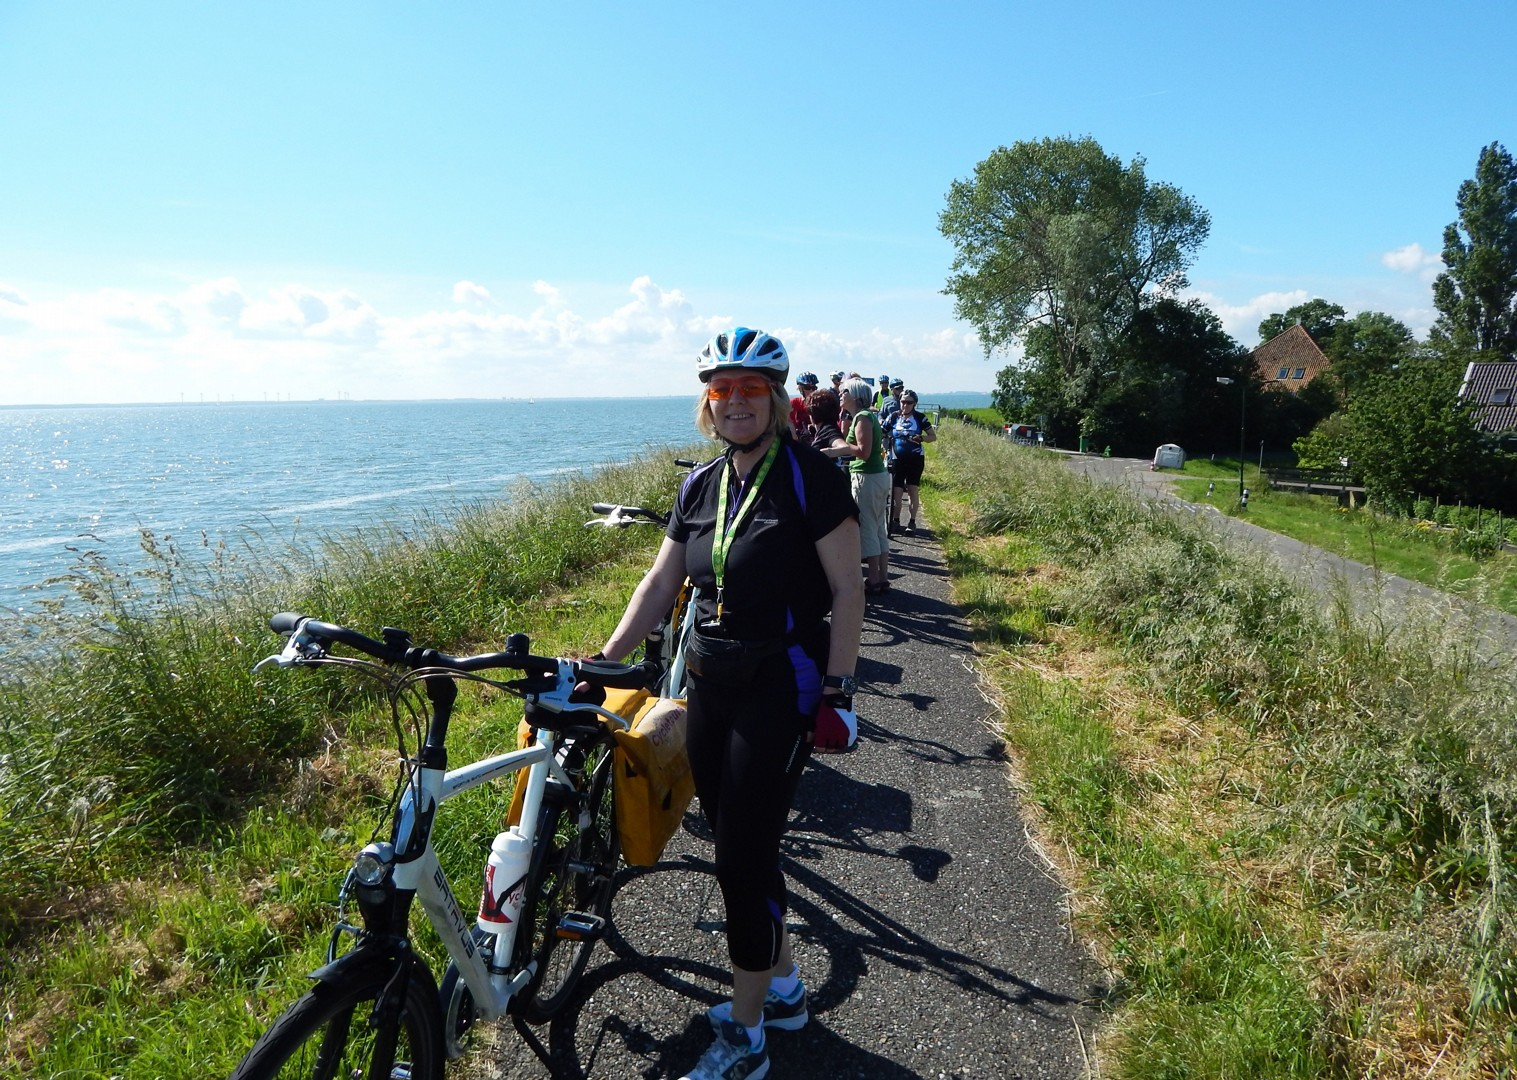 texel-holland-windmills-and-golden-beaches-bike-and-barge-holiday.jpg - Holland - Windmills and Golden Beaches - Bike and Barge Holiday - Family Cycling